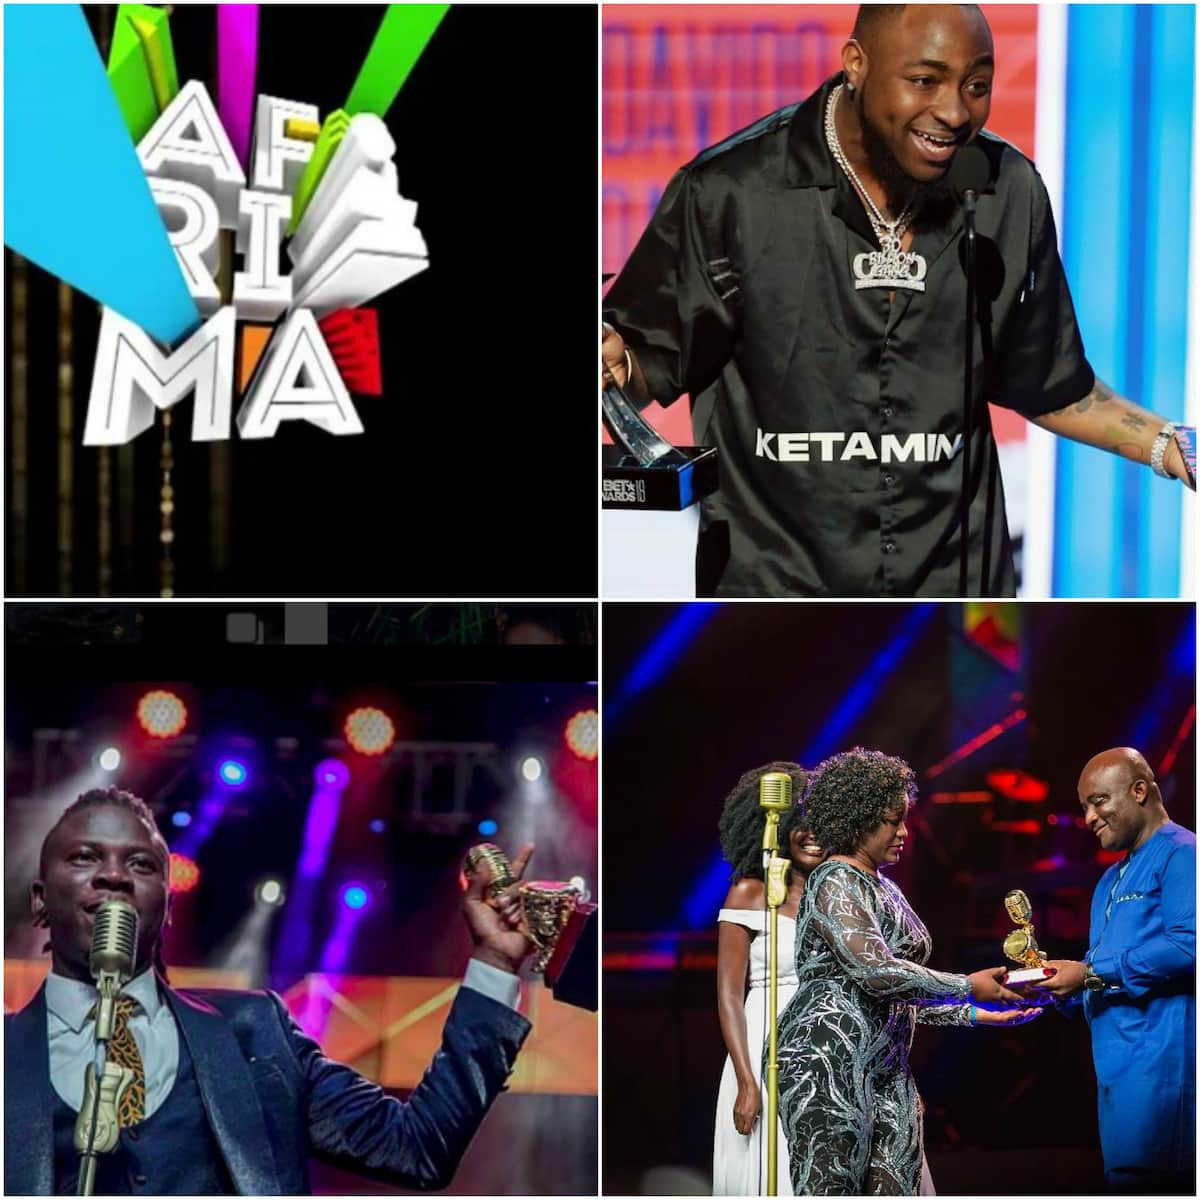 All Africa Music Awards